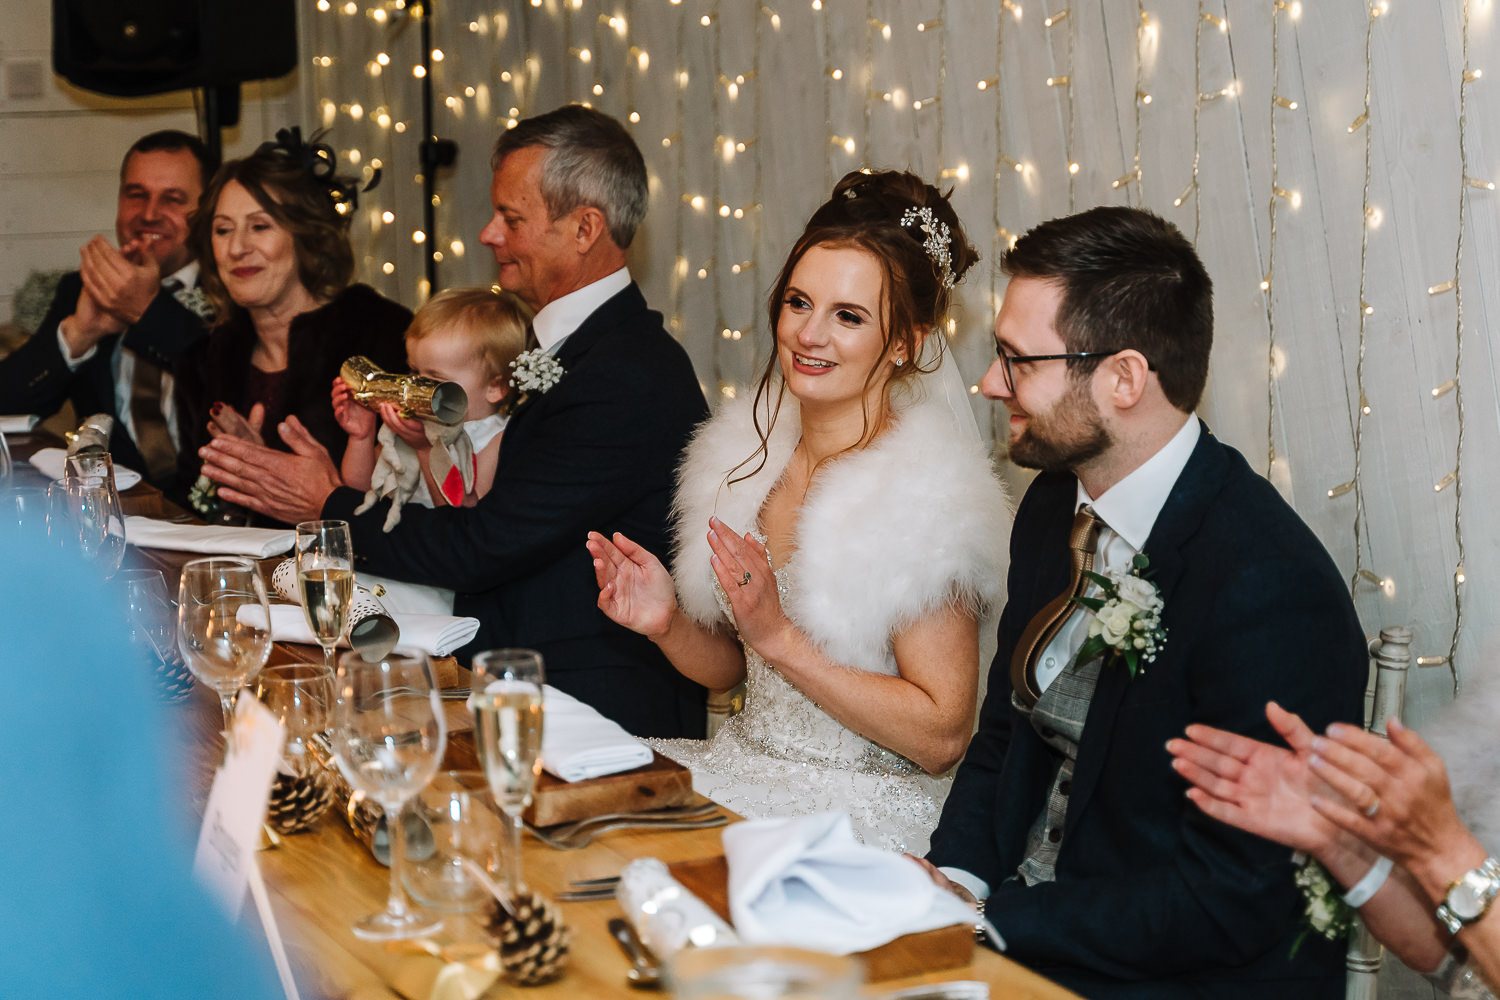 bride clapping the best man